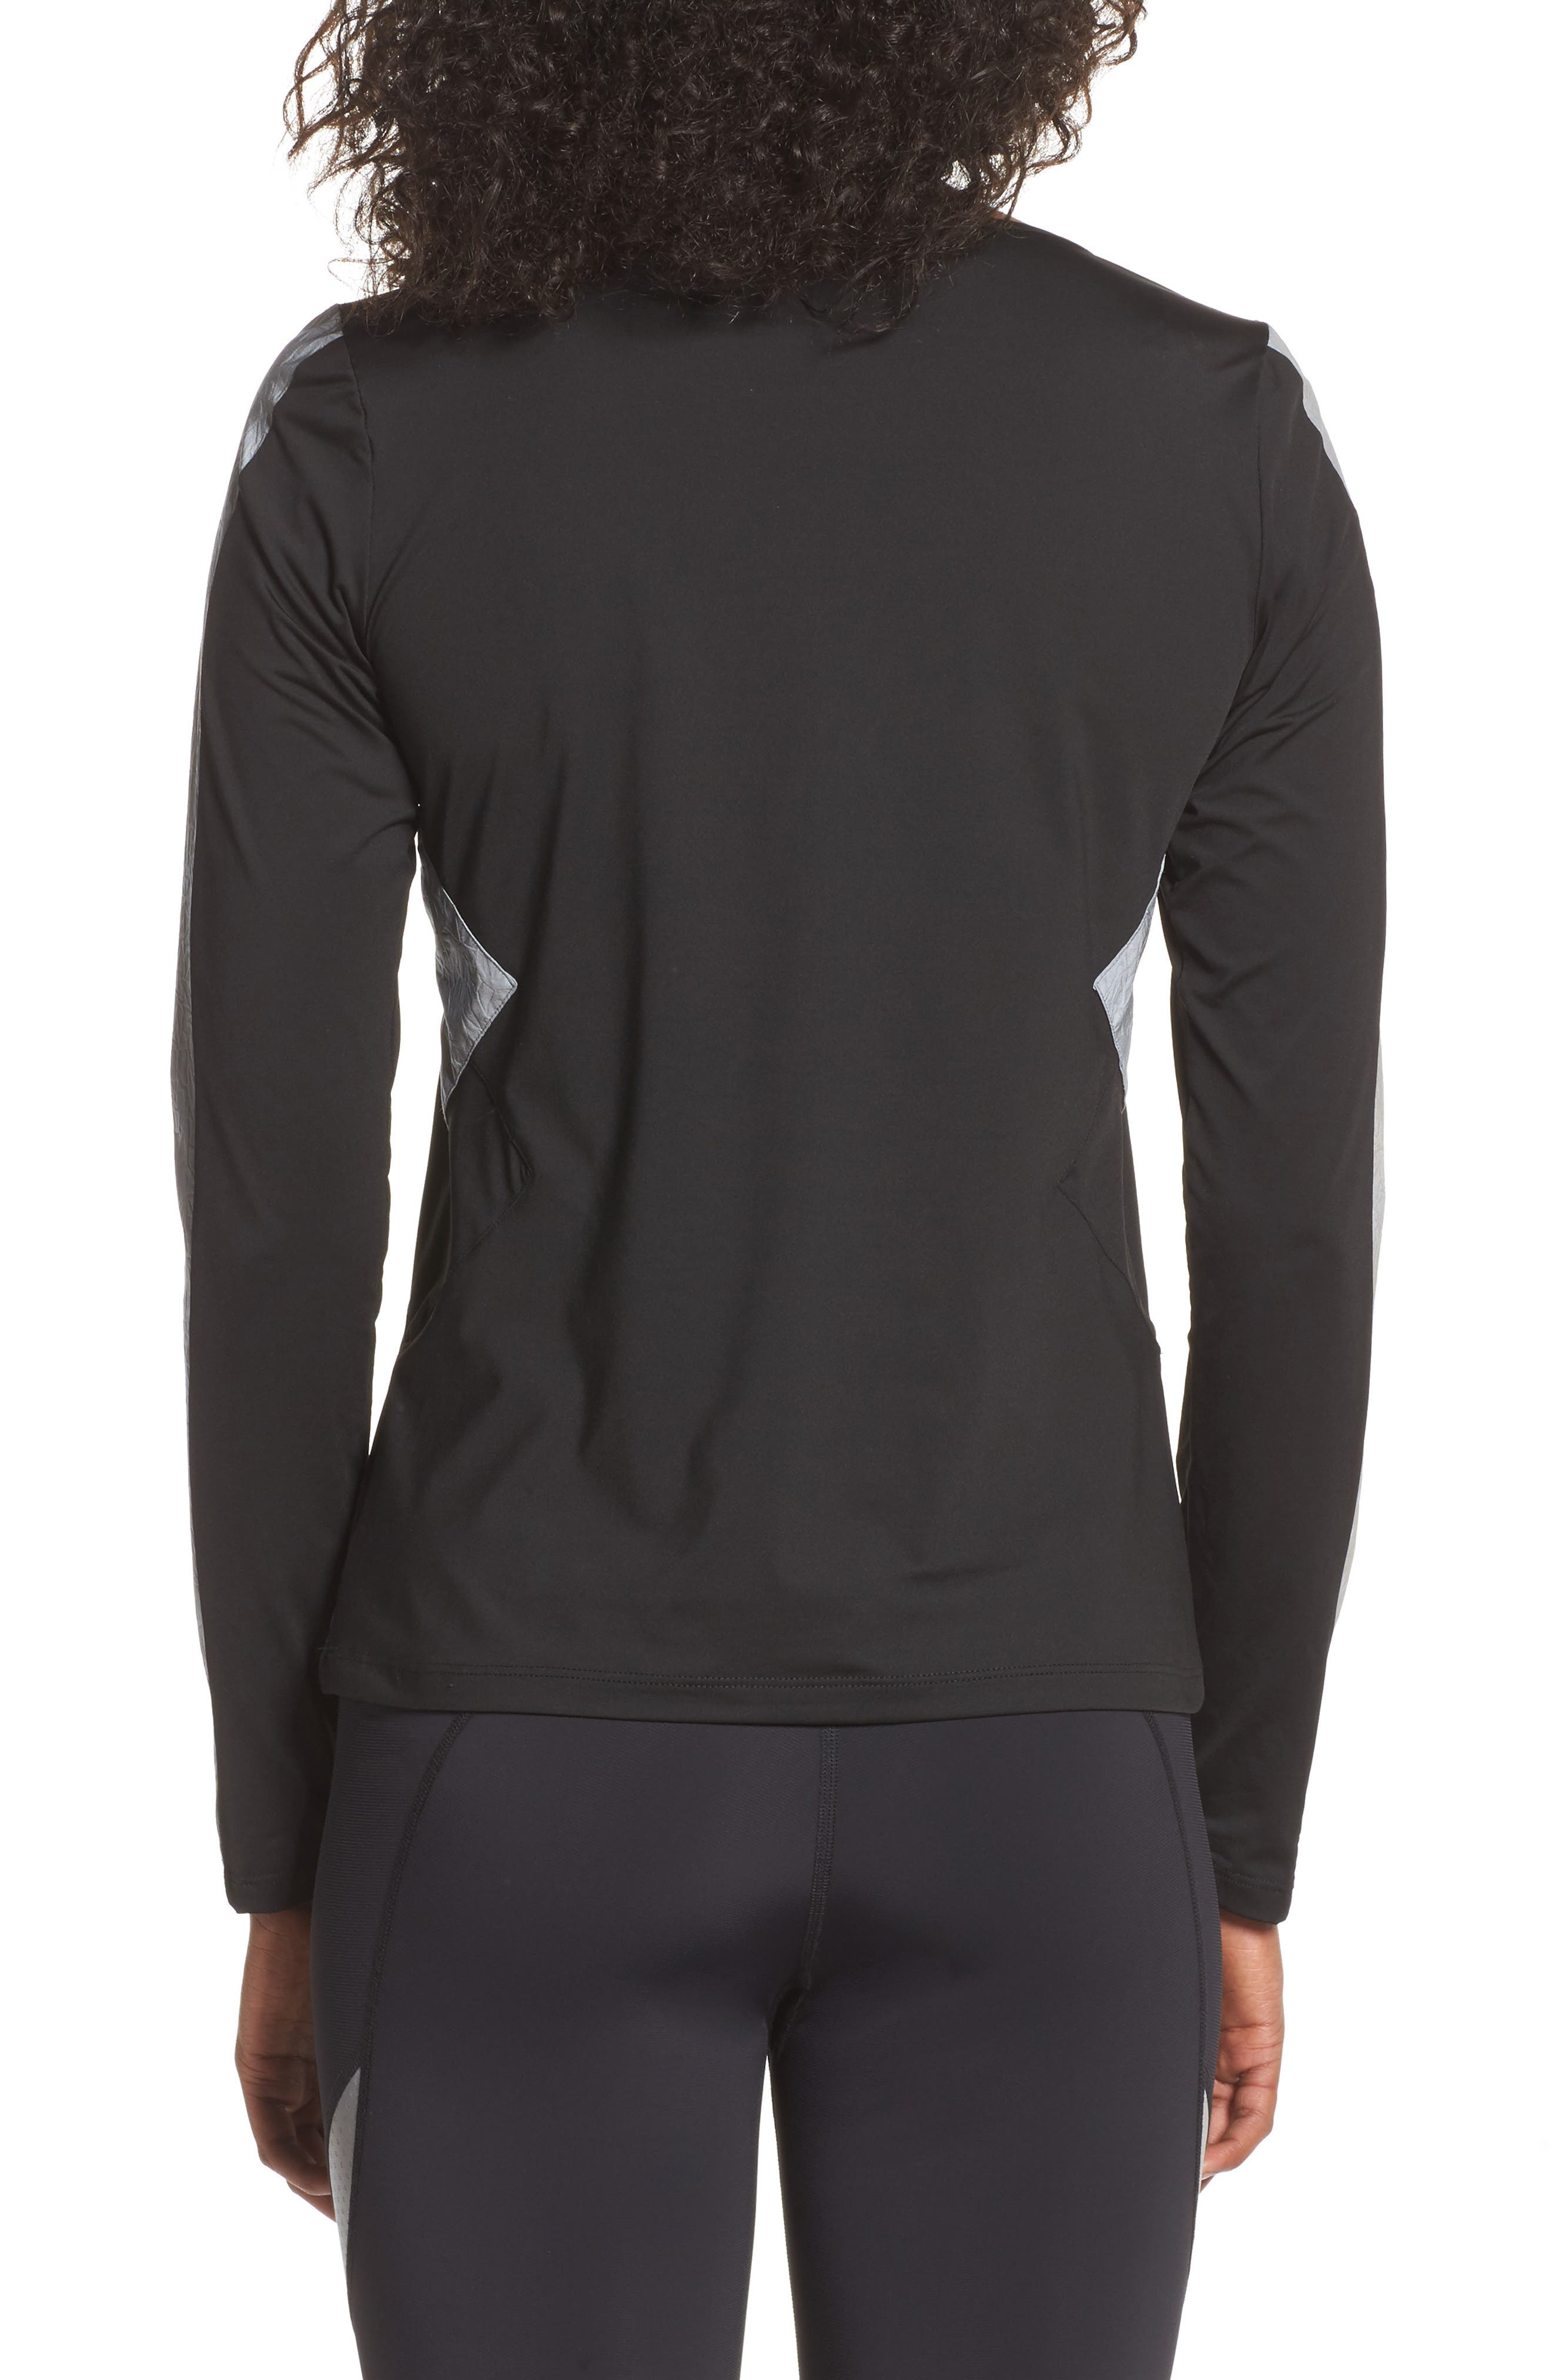 BoomBoom Athletica Reflective Body-Con Long Sleeve Tee,                             Alternate thumbnail 2, color,                             005